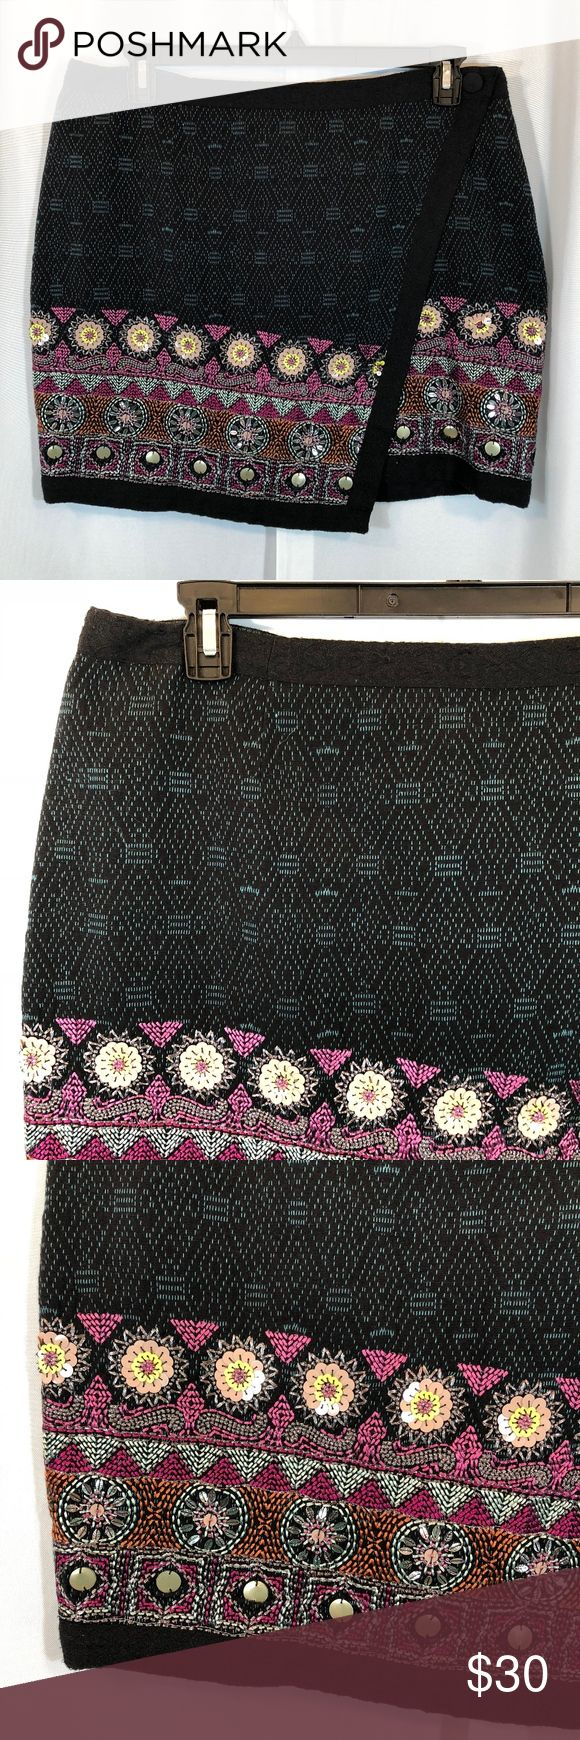 """Monsoon Faux Wrap Black Mini Sequin Skirt, 12 NWOT Brand: Monsoon Size: 12 Material: 83% Cotton, 17% Polyester (Lining - 100% Cotton) Condition: Brand new without tags  Approx. Measurements  Waist: 36""""  Length: 18"""" Monsoon Skirts Mini"""